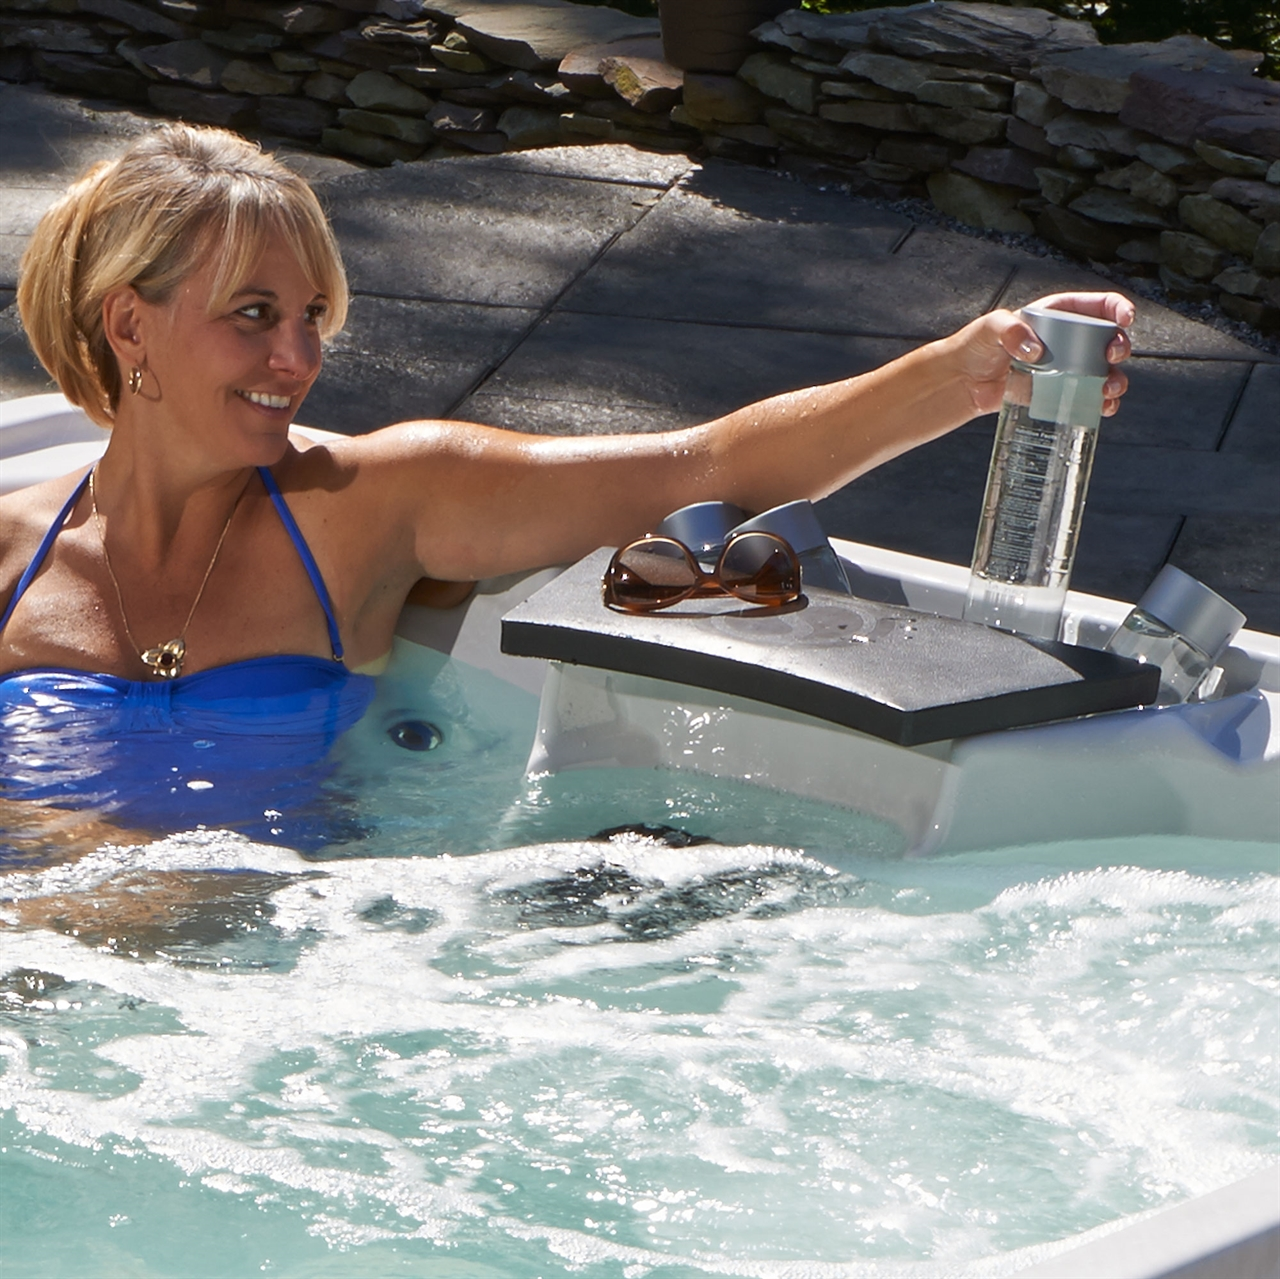 0004392-summit-sl28-hot-tub-5-seats.jpg